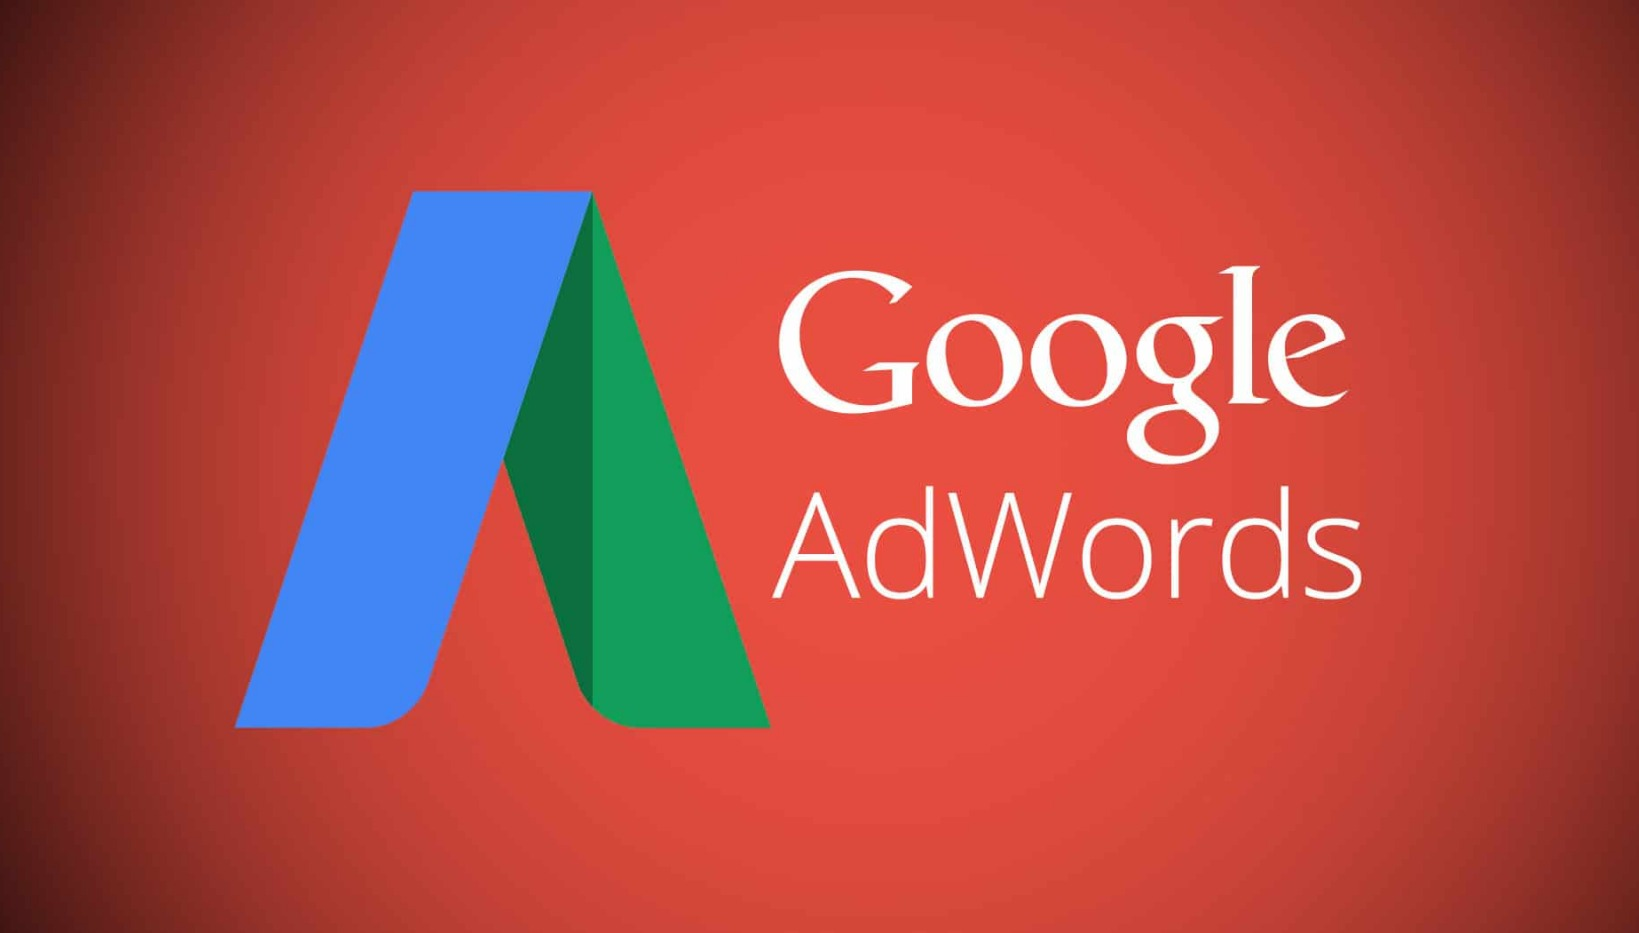 How to Find Your Google AdWords Client ID